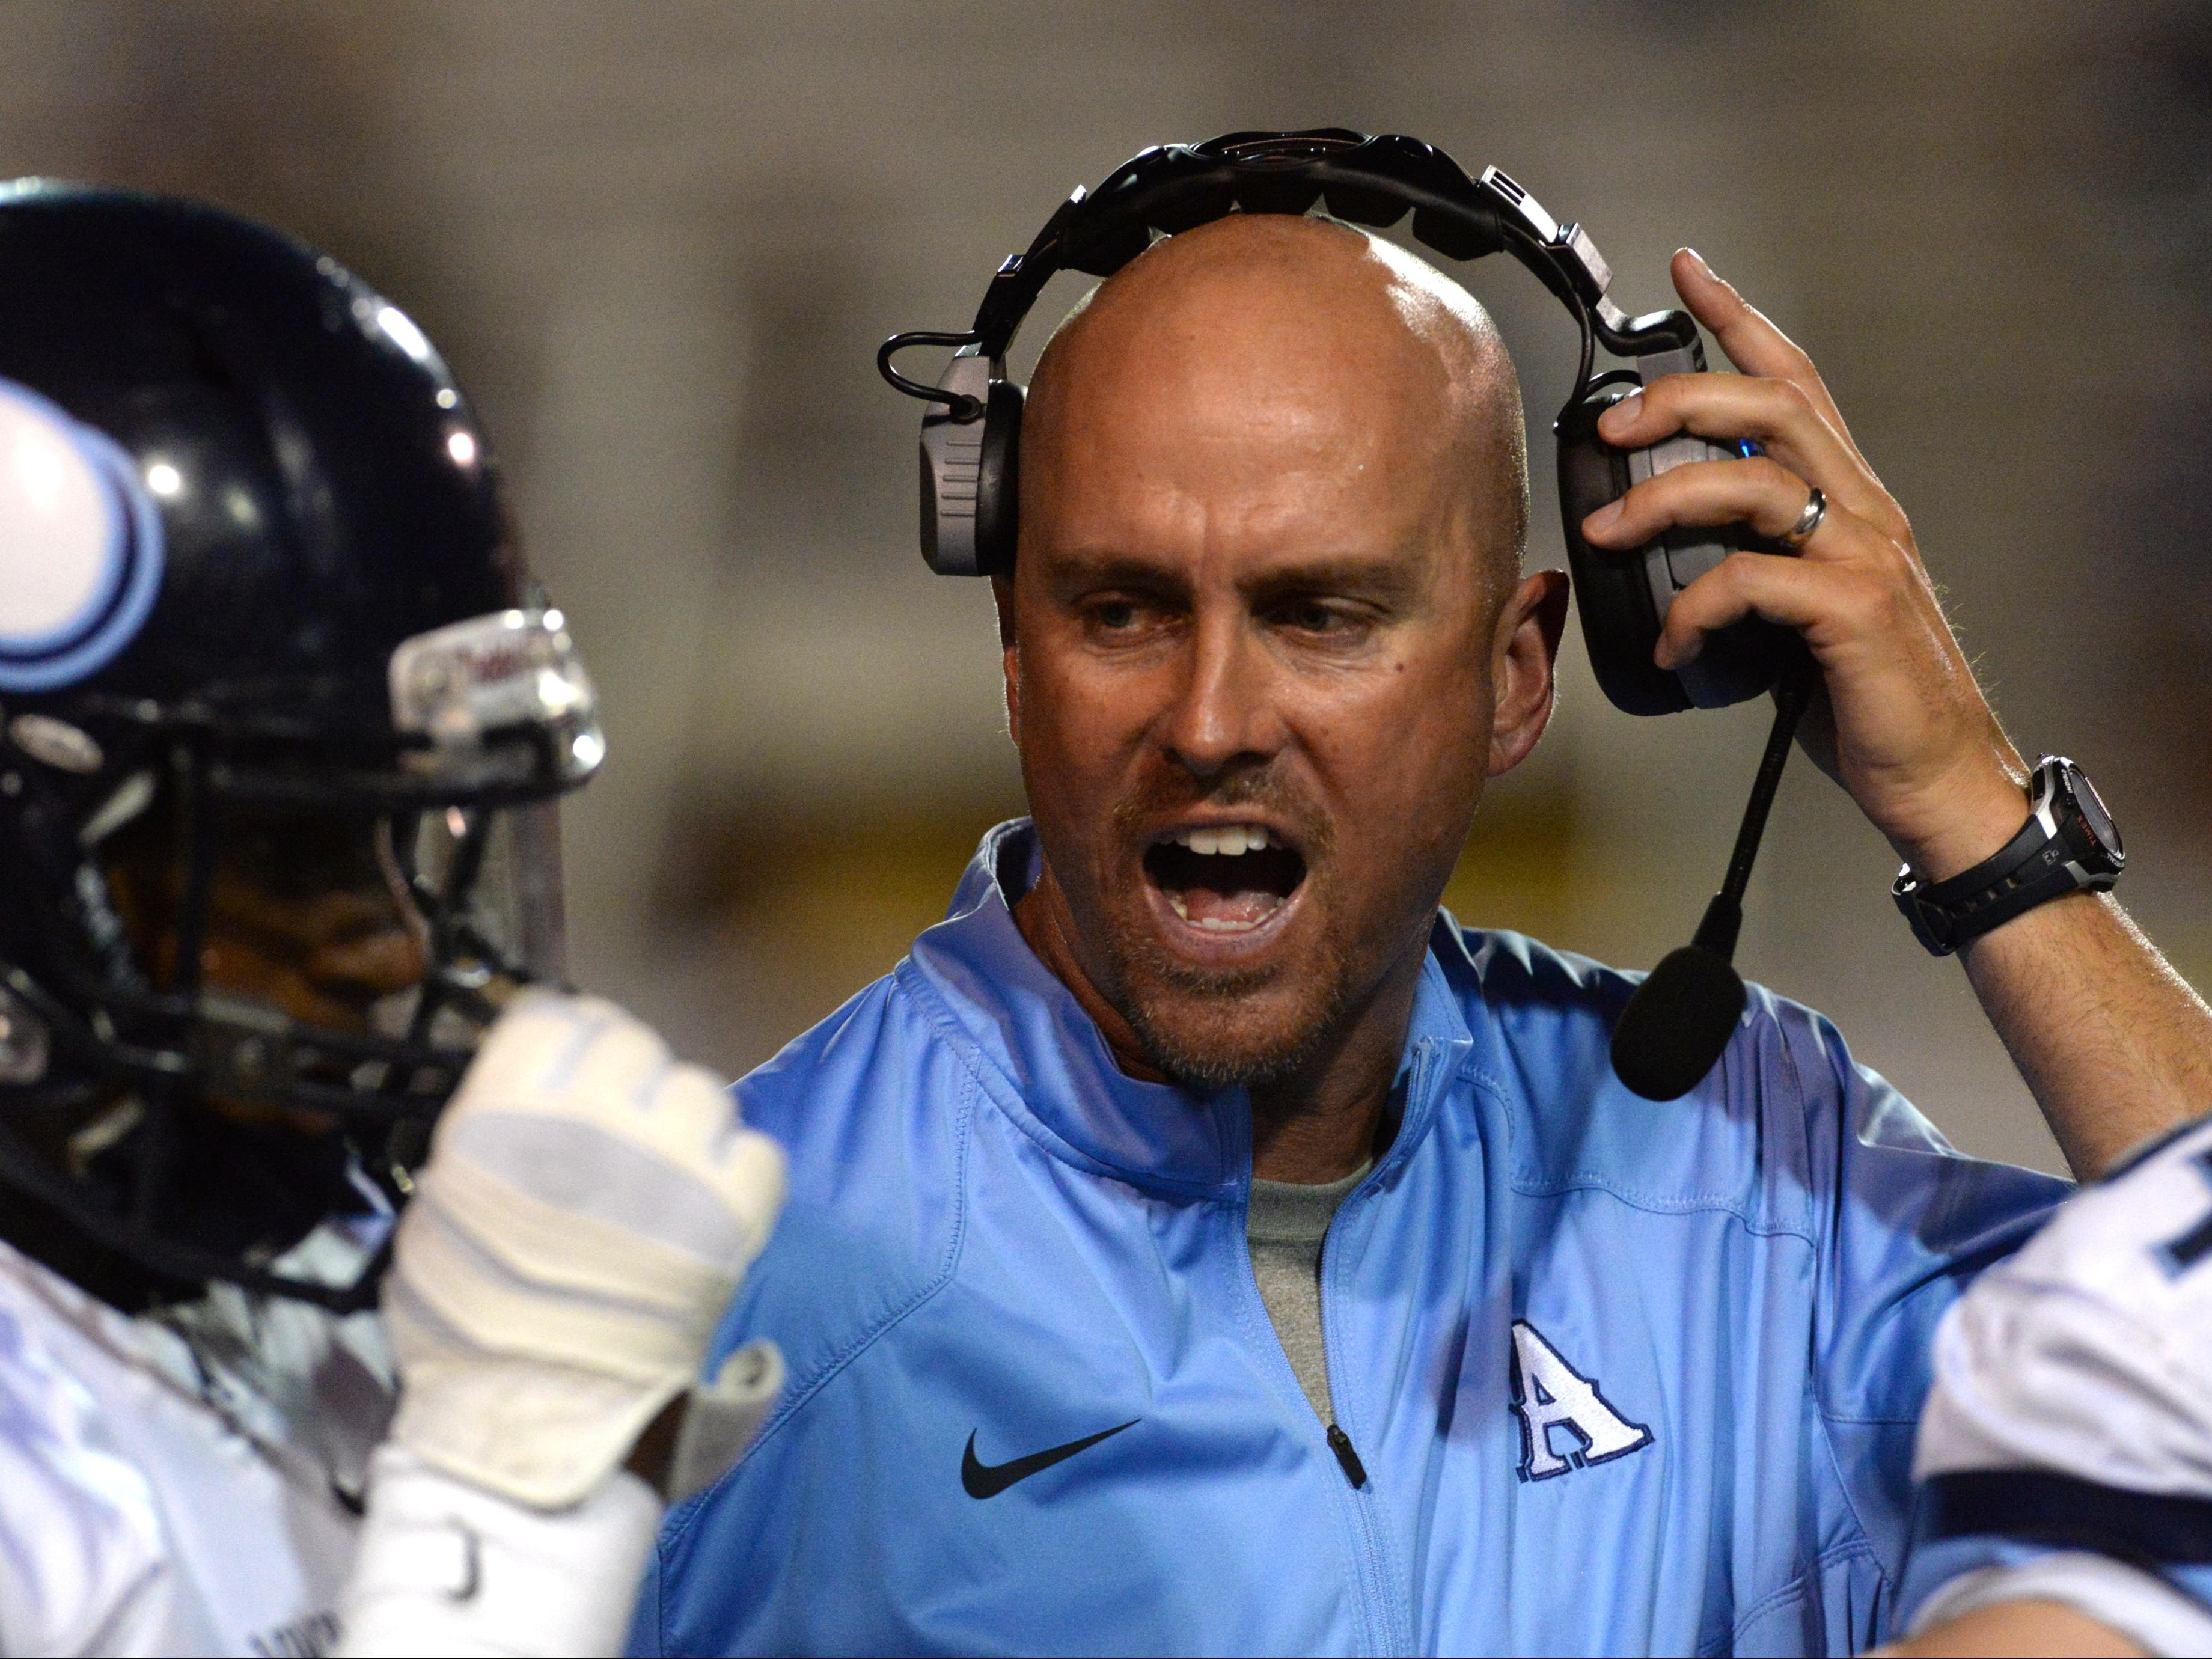 Airline coach Bo Meeks believes his team's depth will be a major factor in a stout District 1-5A this season.